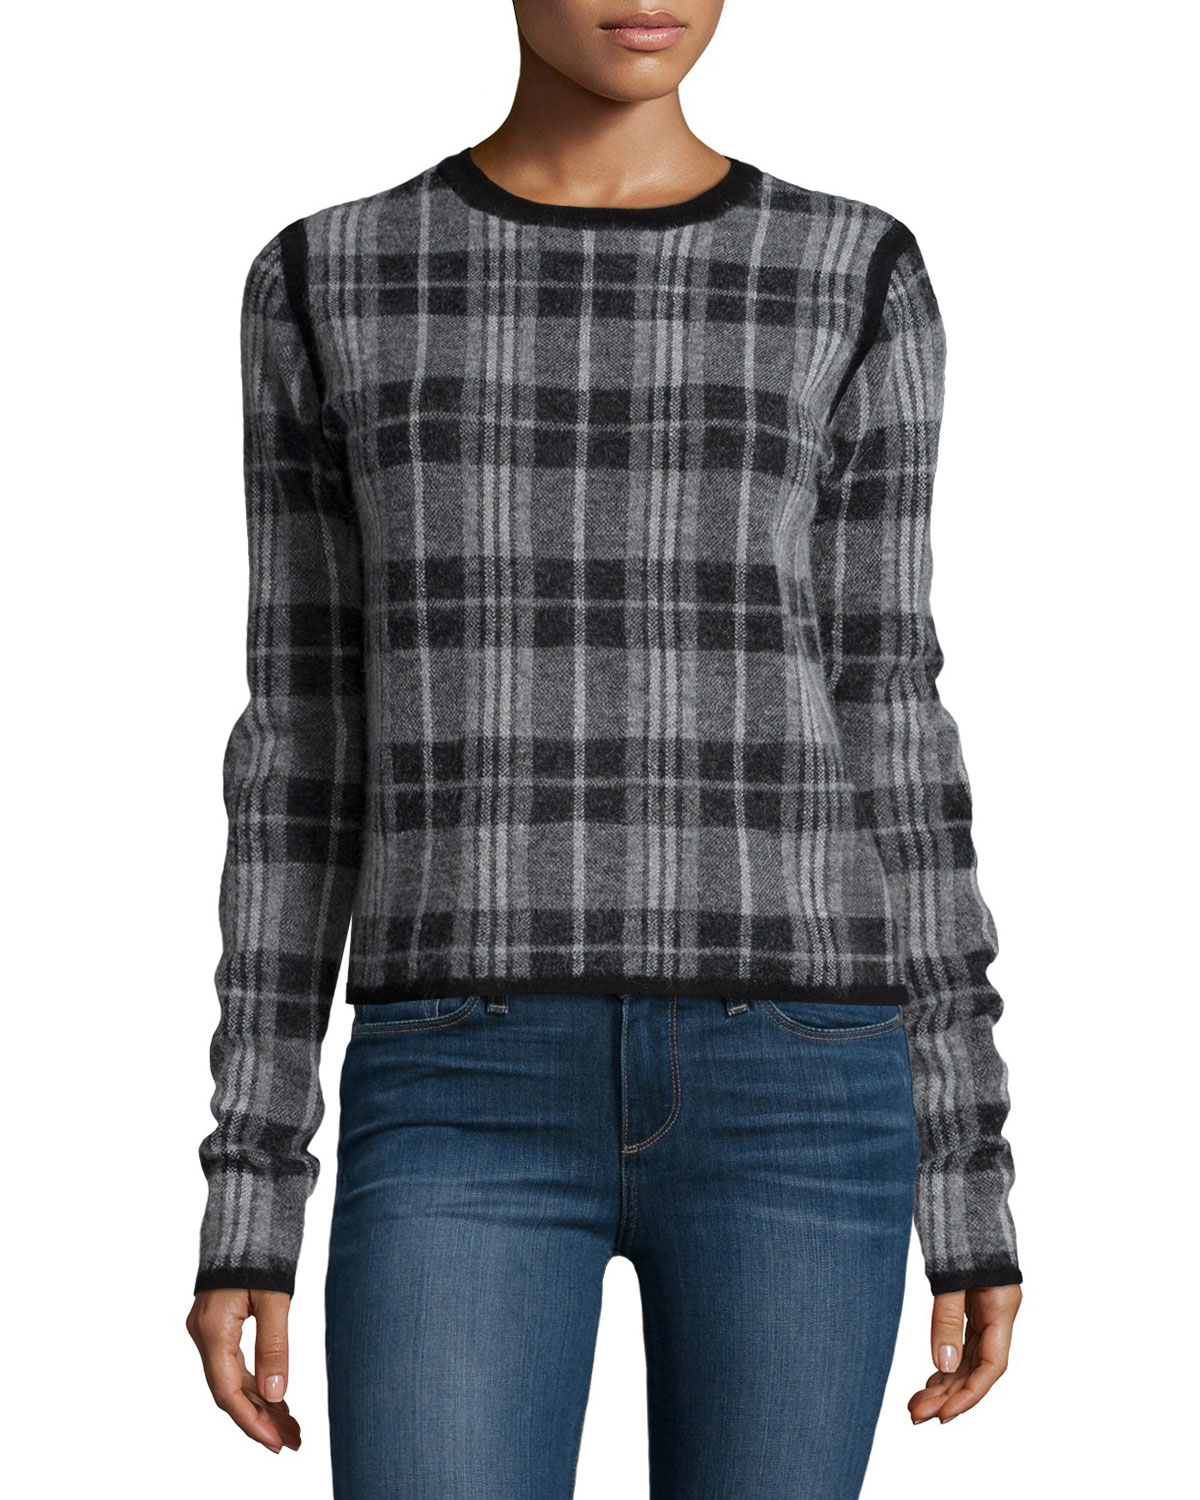 Autry Long-Sleeve Plaid Sweater, Black/Medium Heather